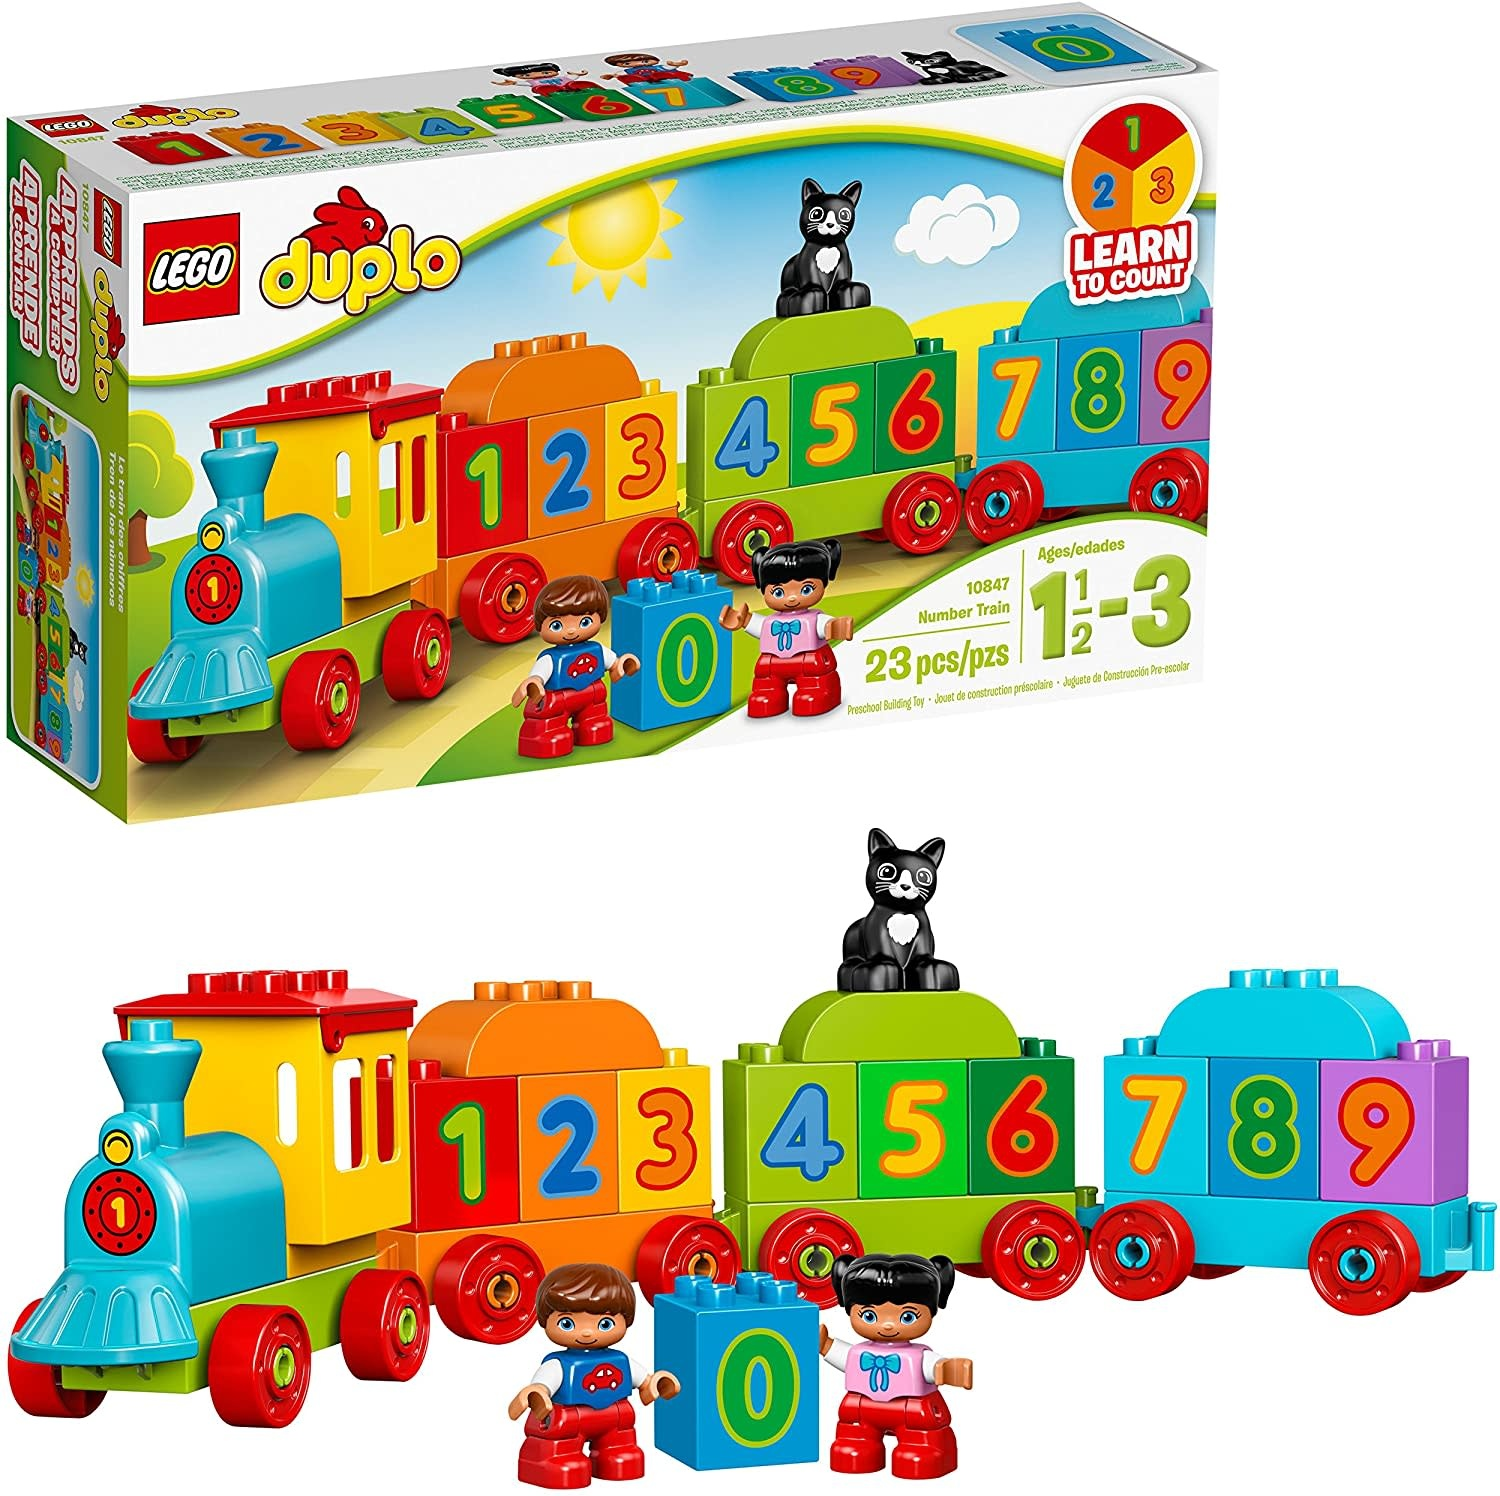 10847 Number Train by LEGO Duplo